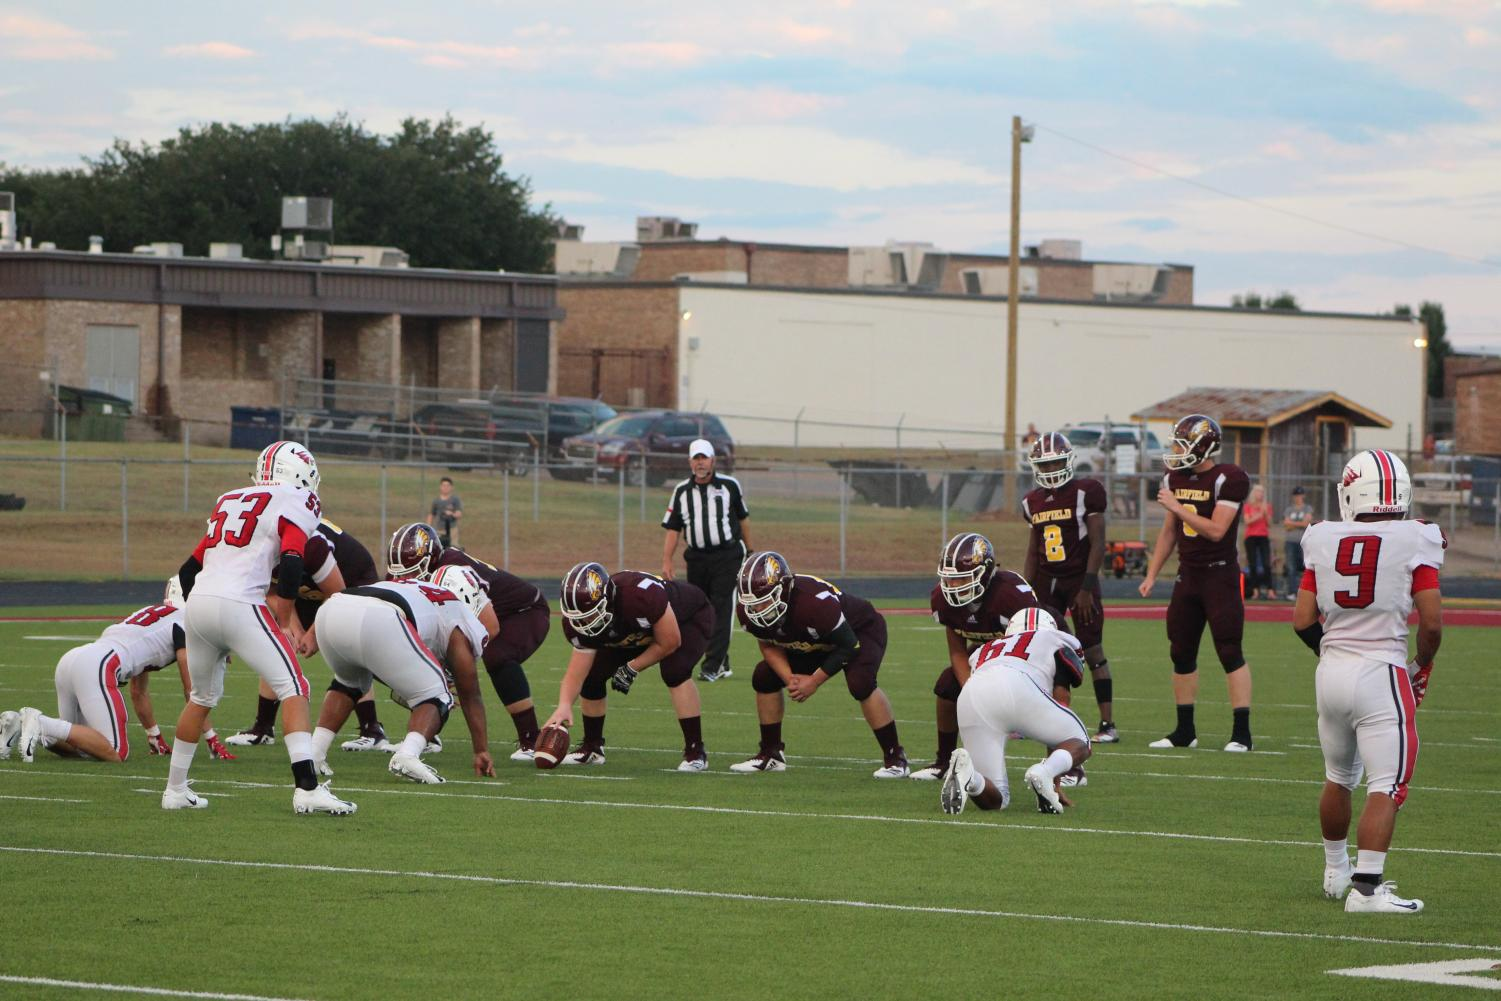 The offensive line, #2 Kadarrius Walker, and #8 Chad Rushin prepare for the snap. Photo by Melanie Pina.